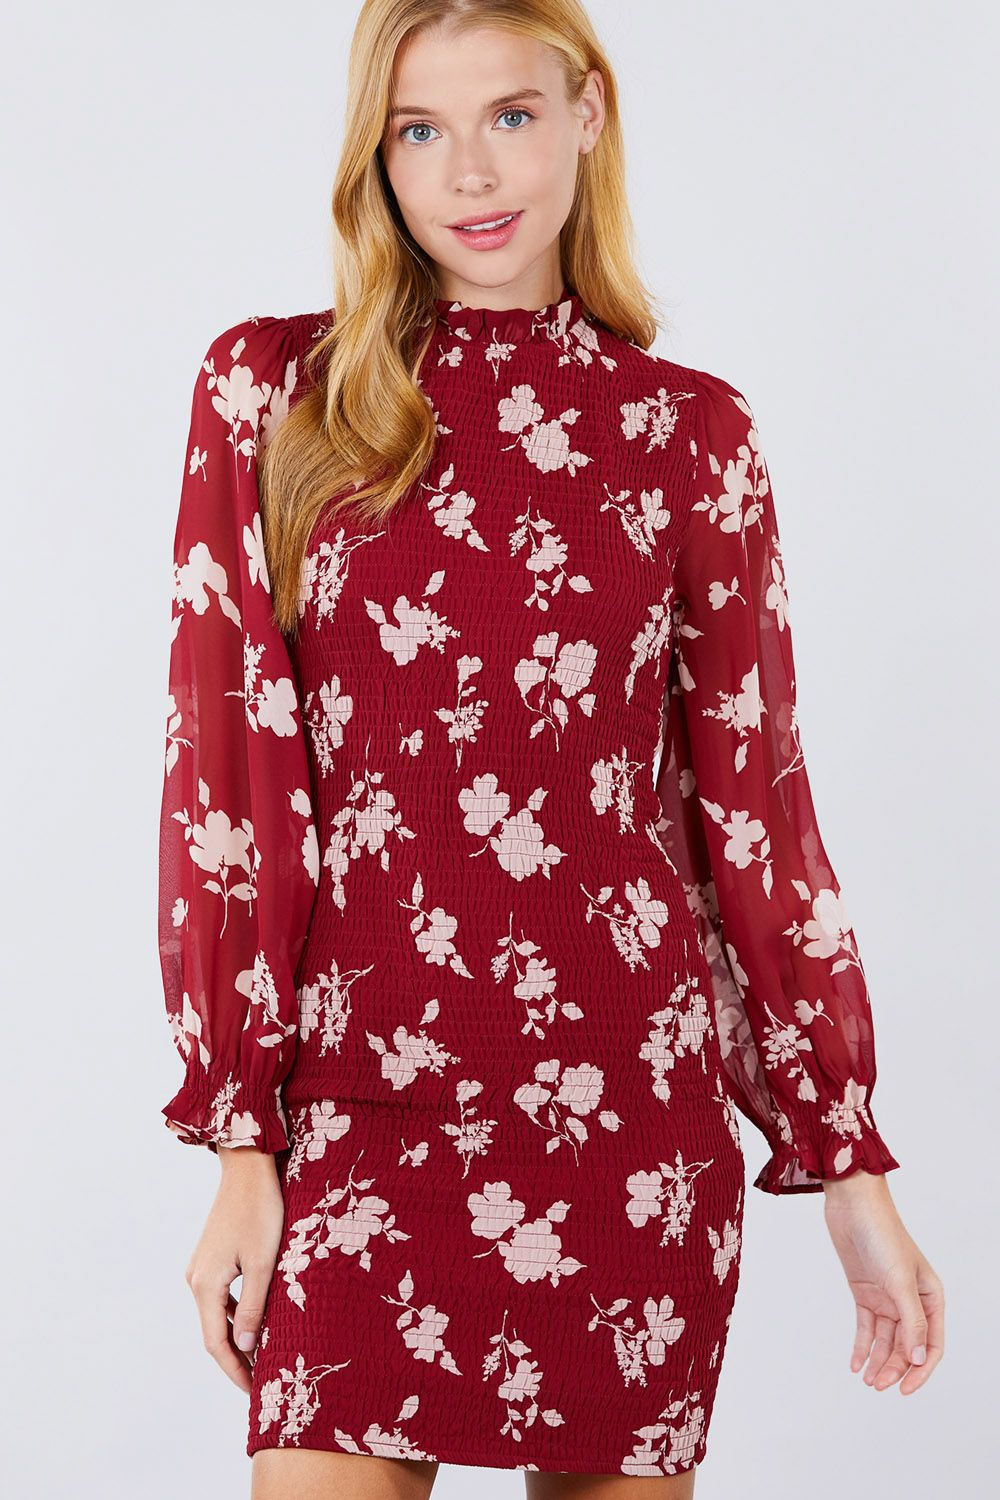 STEFANA Ruffle Sleeve Print Mini Dress